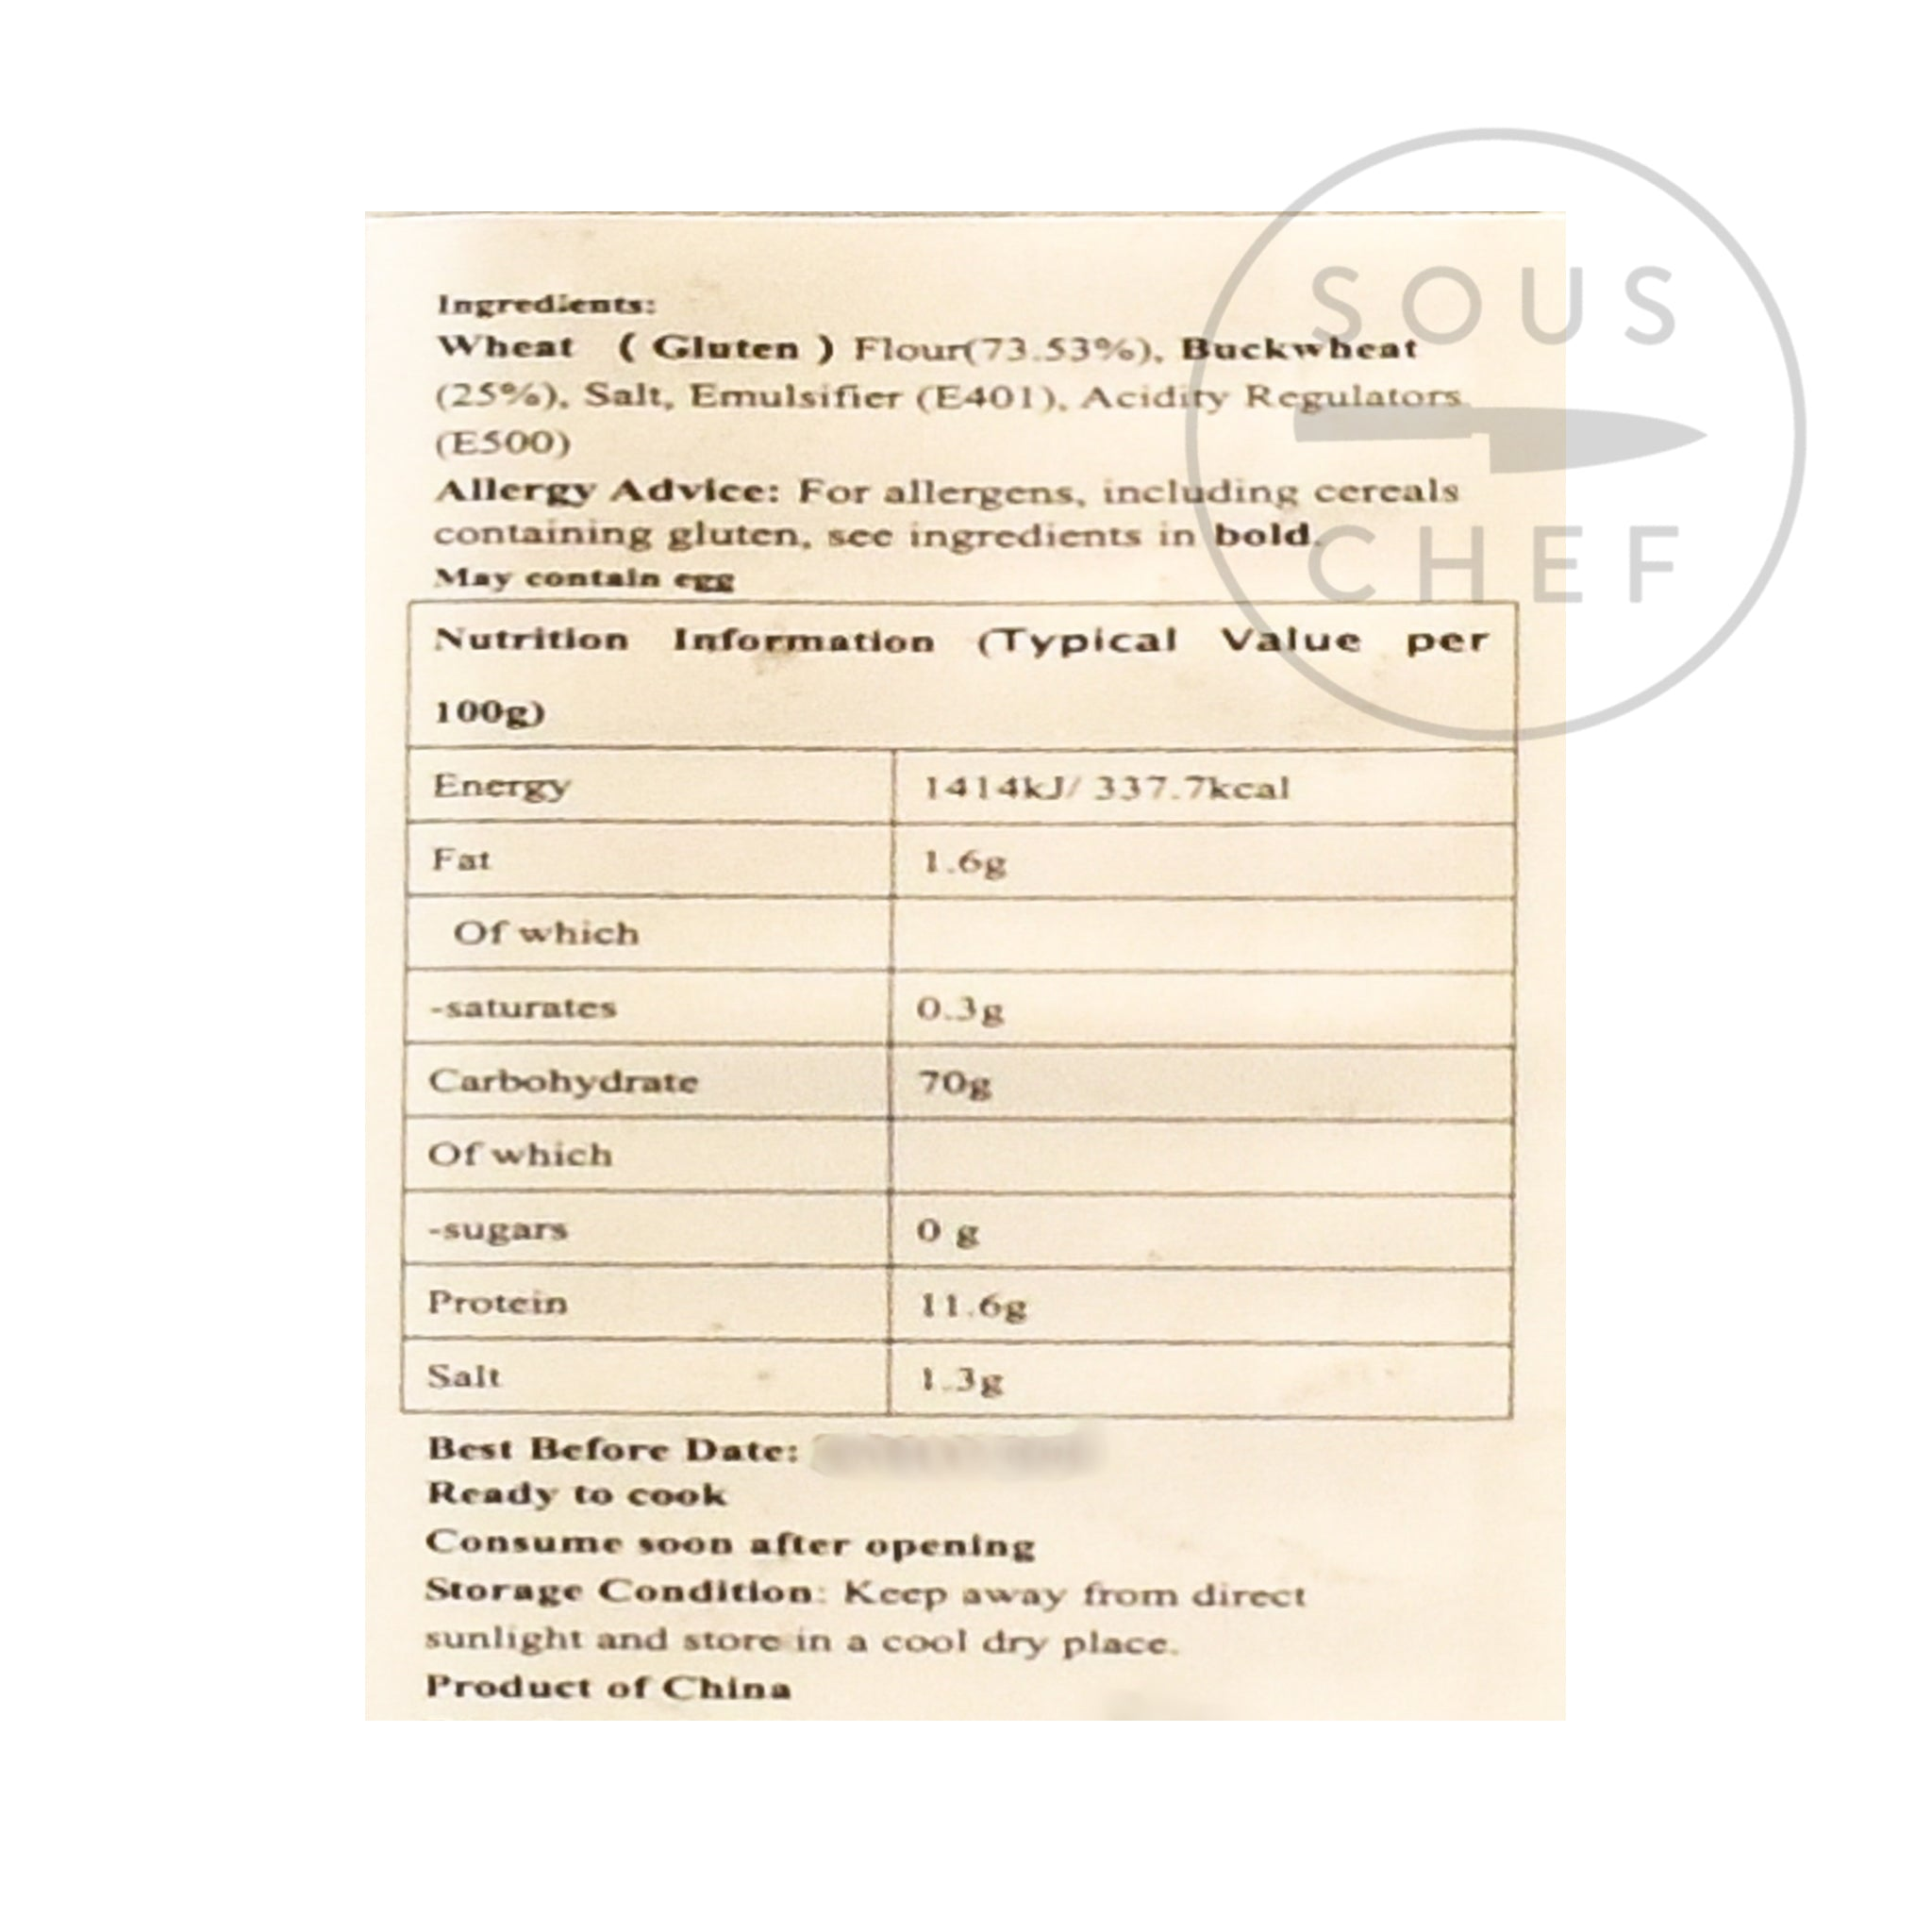 Buckwheat Noodles 908g nutritional information ingredients